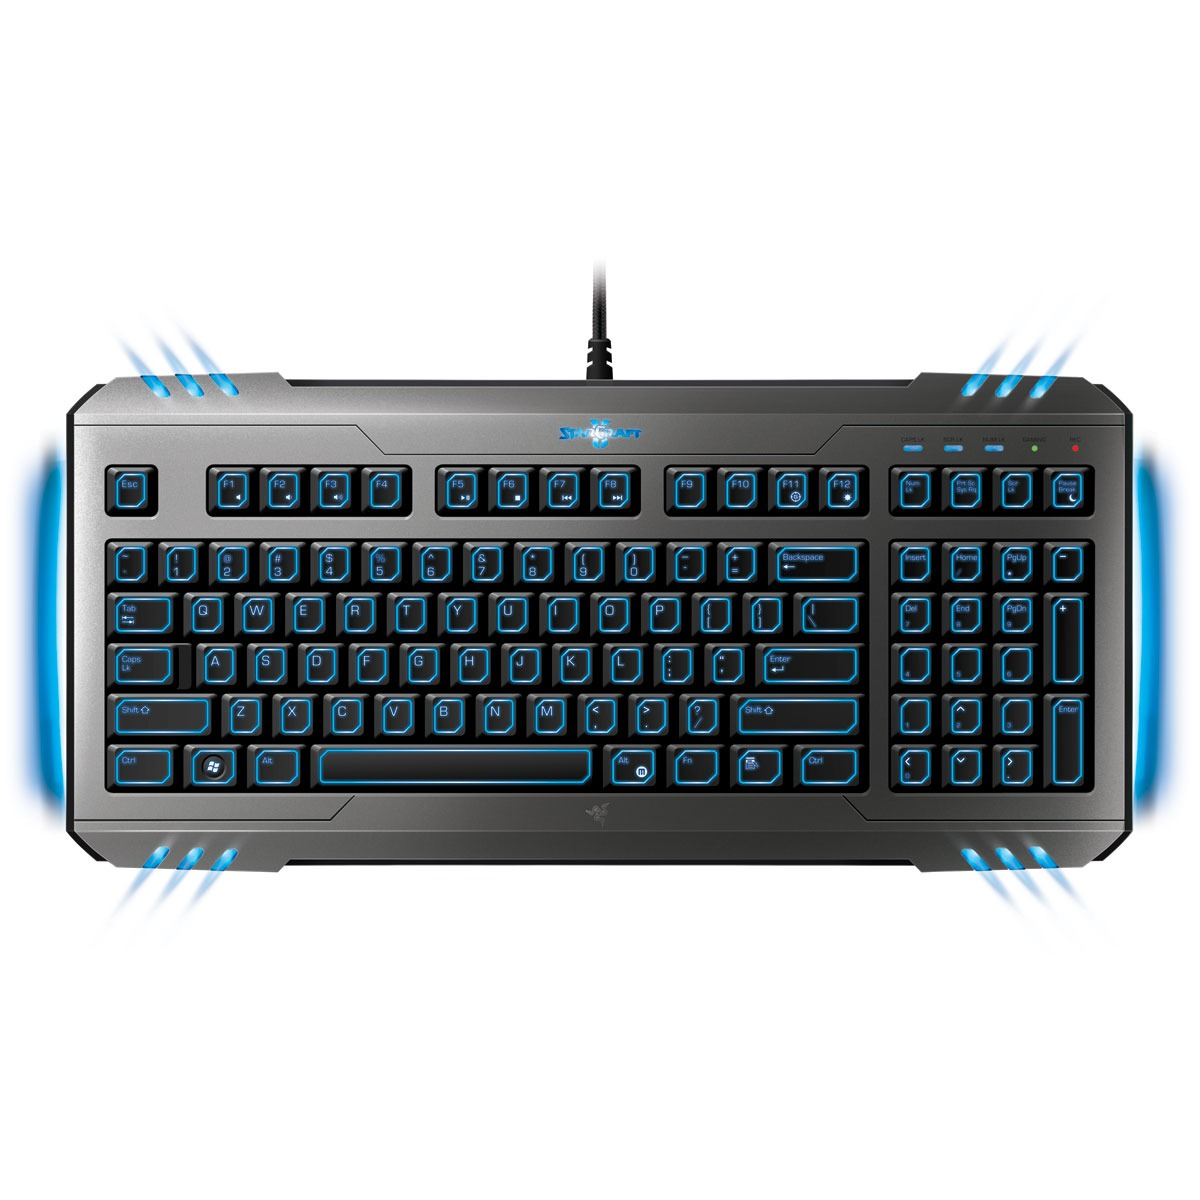 razer marauder starcraft ii gaming keyboard clavier pc razer sur ldlc. Black Bedroom Furniture Sets. Home Design Ideas